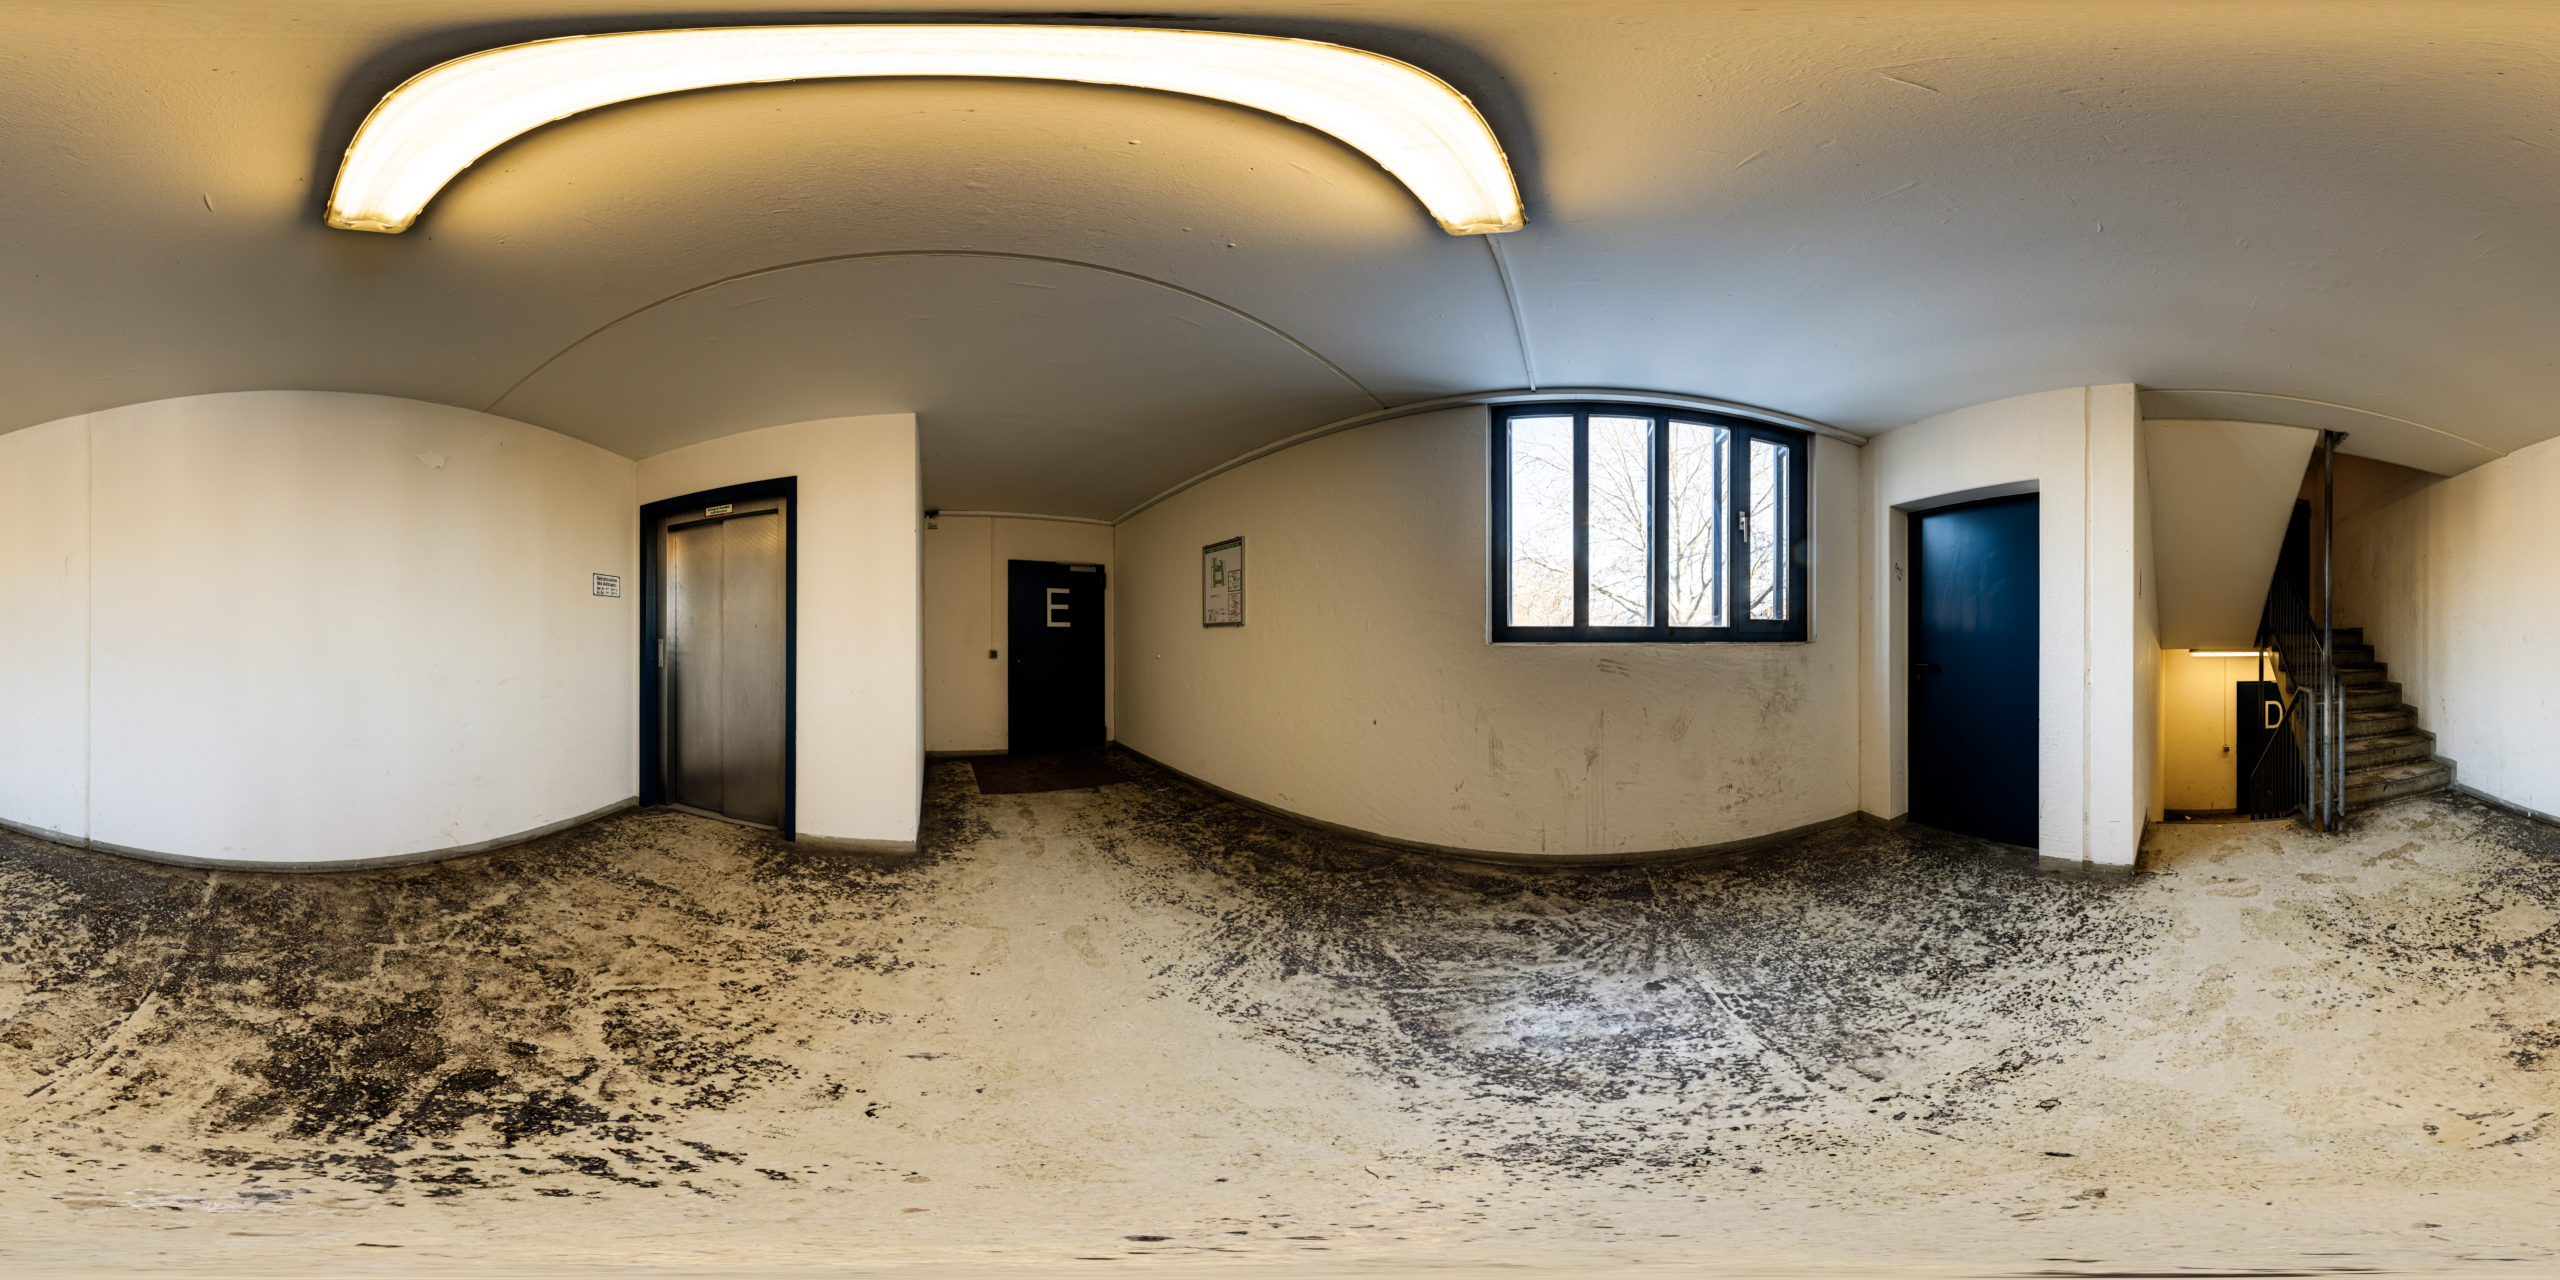 HDRI-Skies-Parking-Garage-Stairwell-Weißenburg